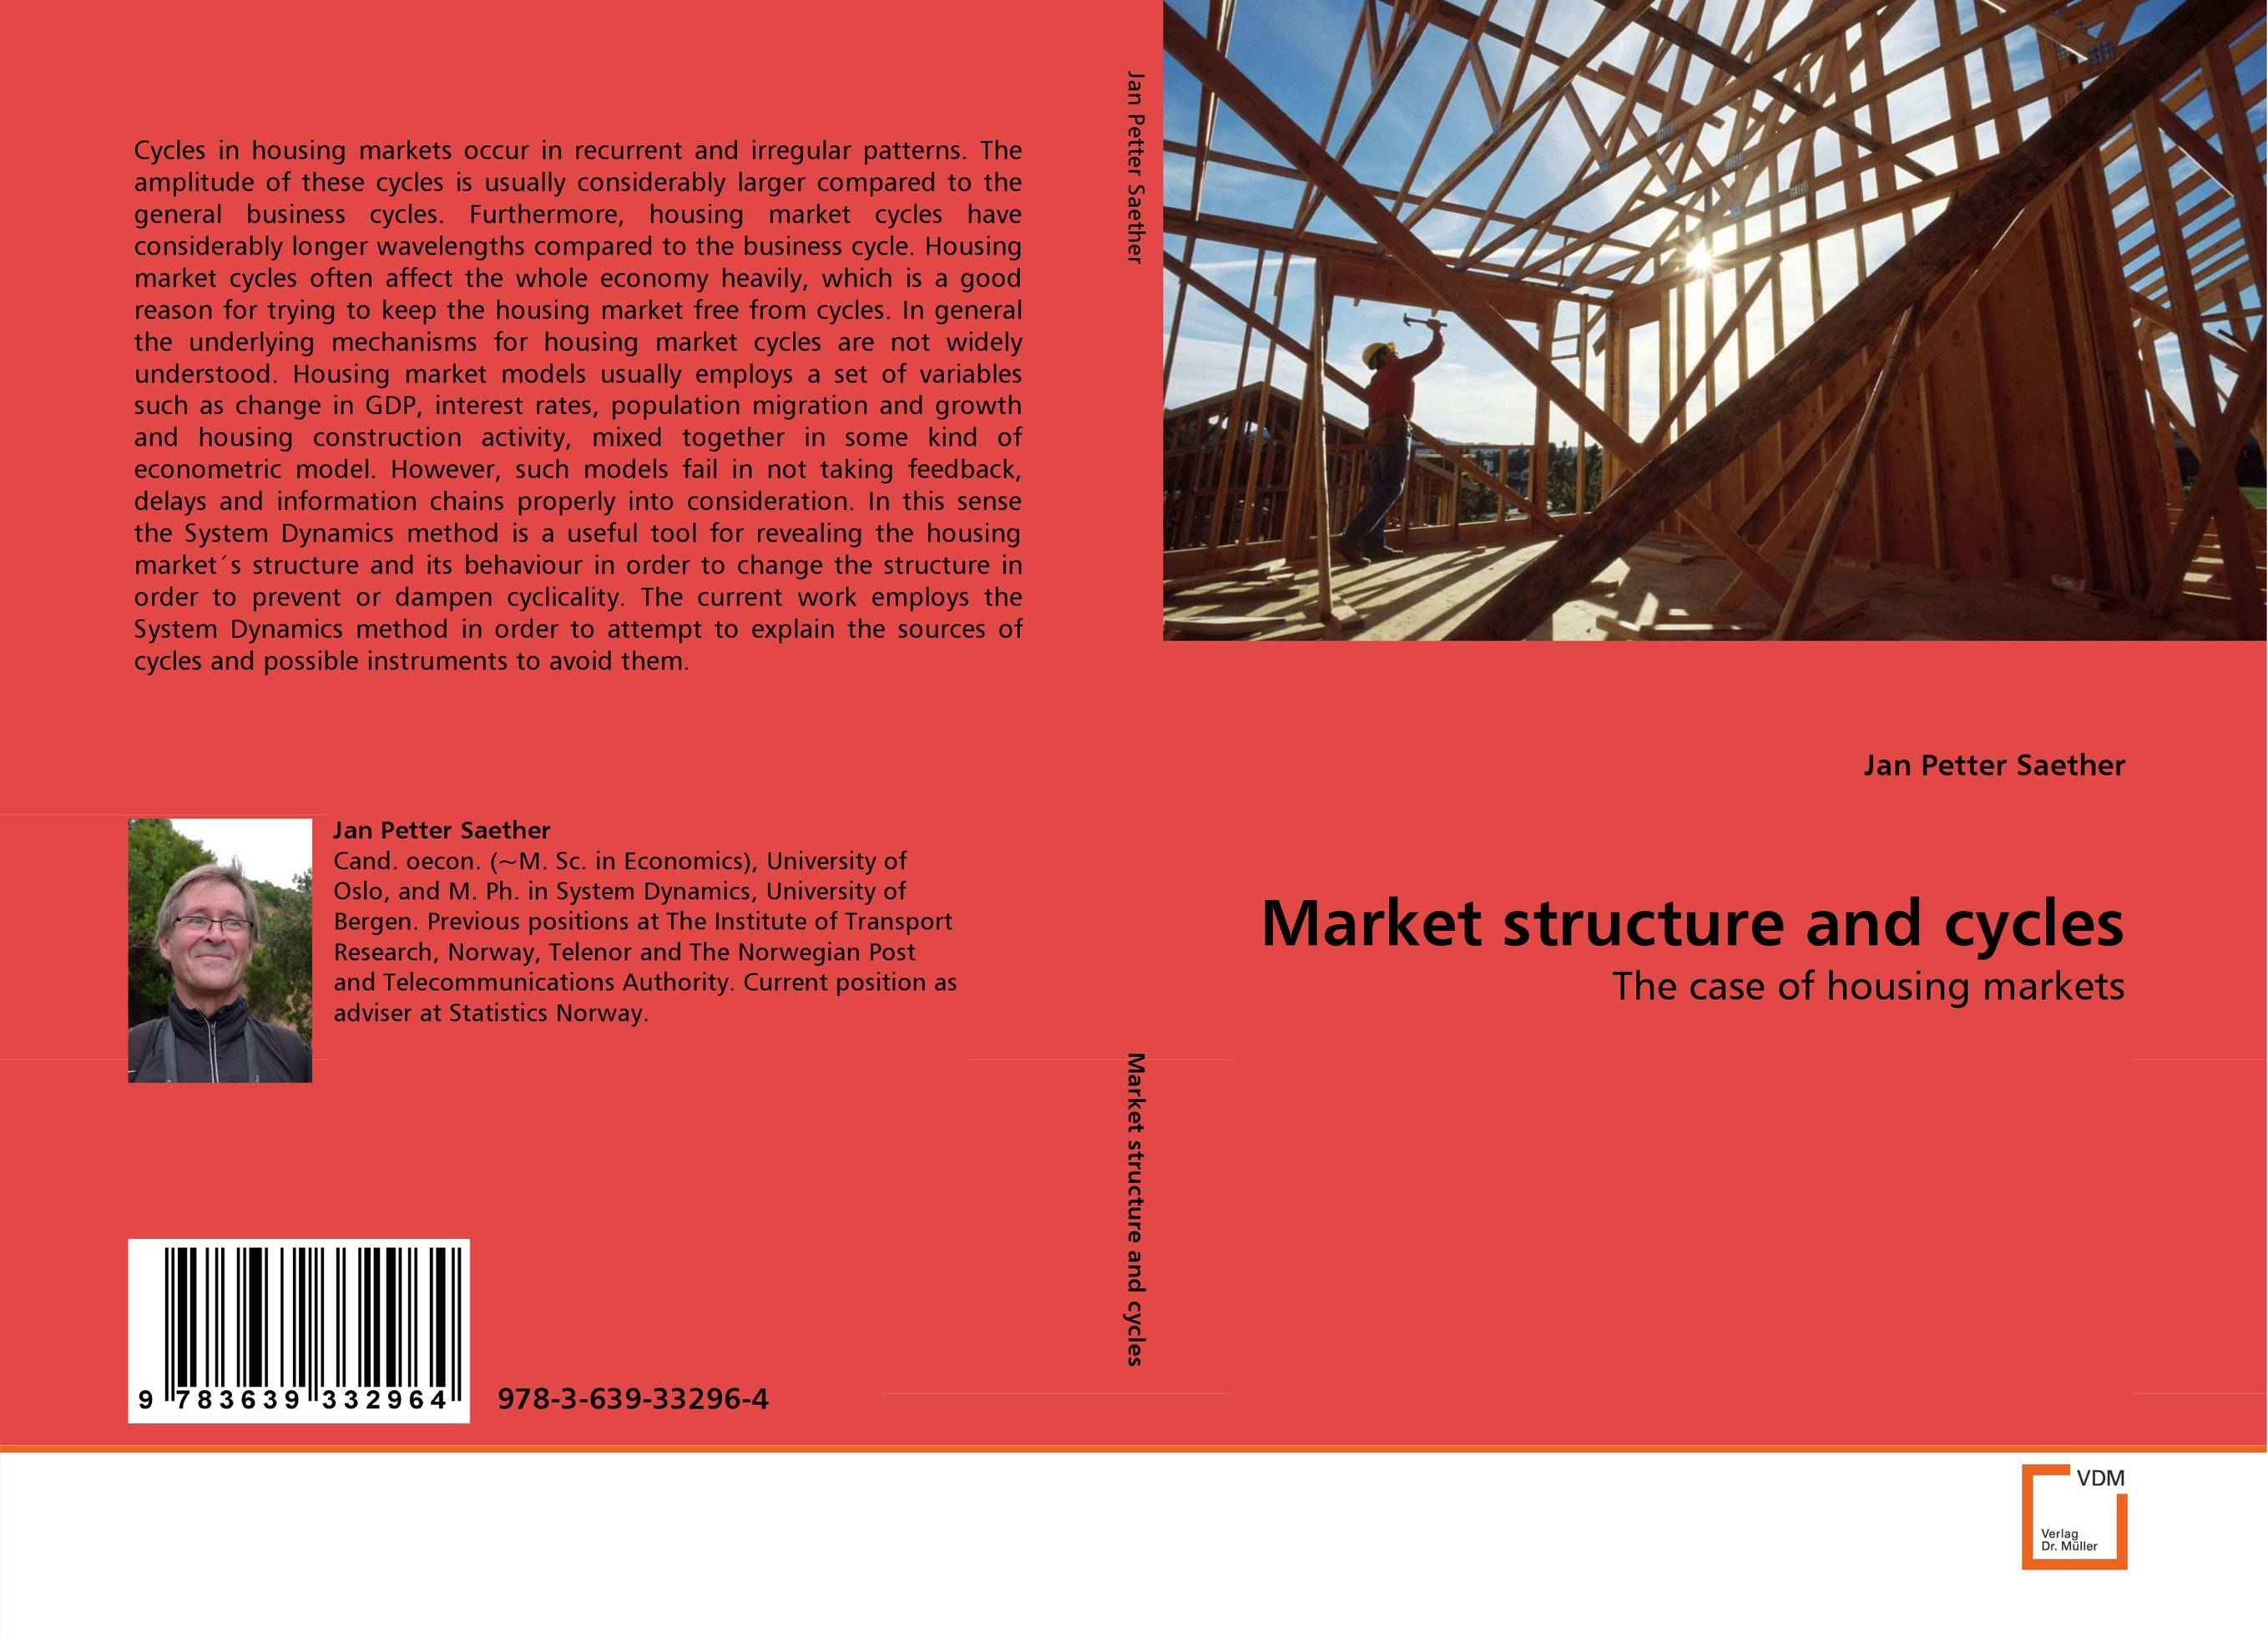 Market structure and cycles social housing in glasgow volume 2